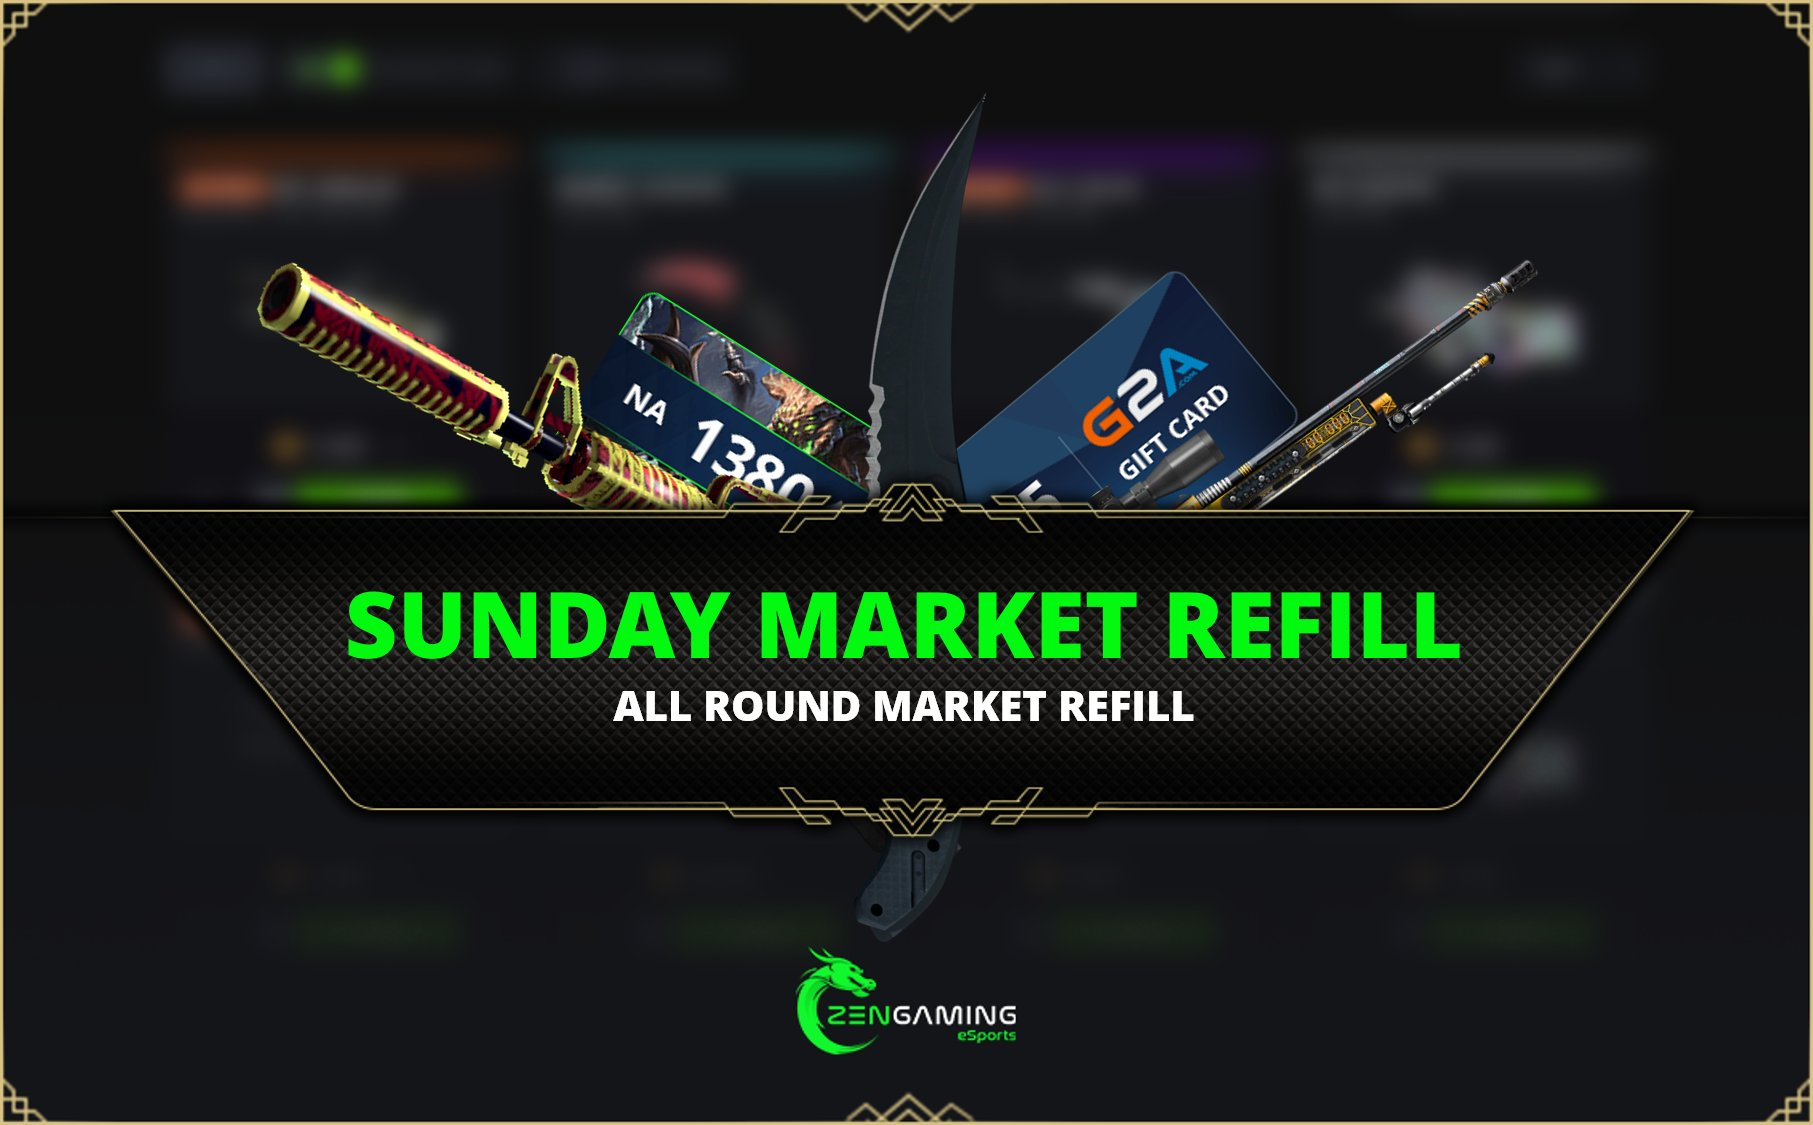 Zengaming market not working this game requires steam cs go o co chodzi